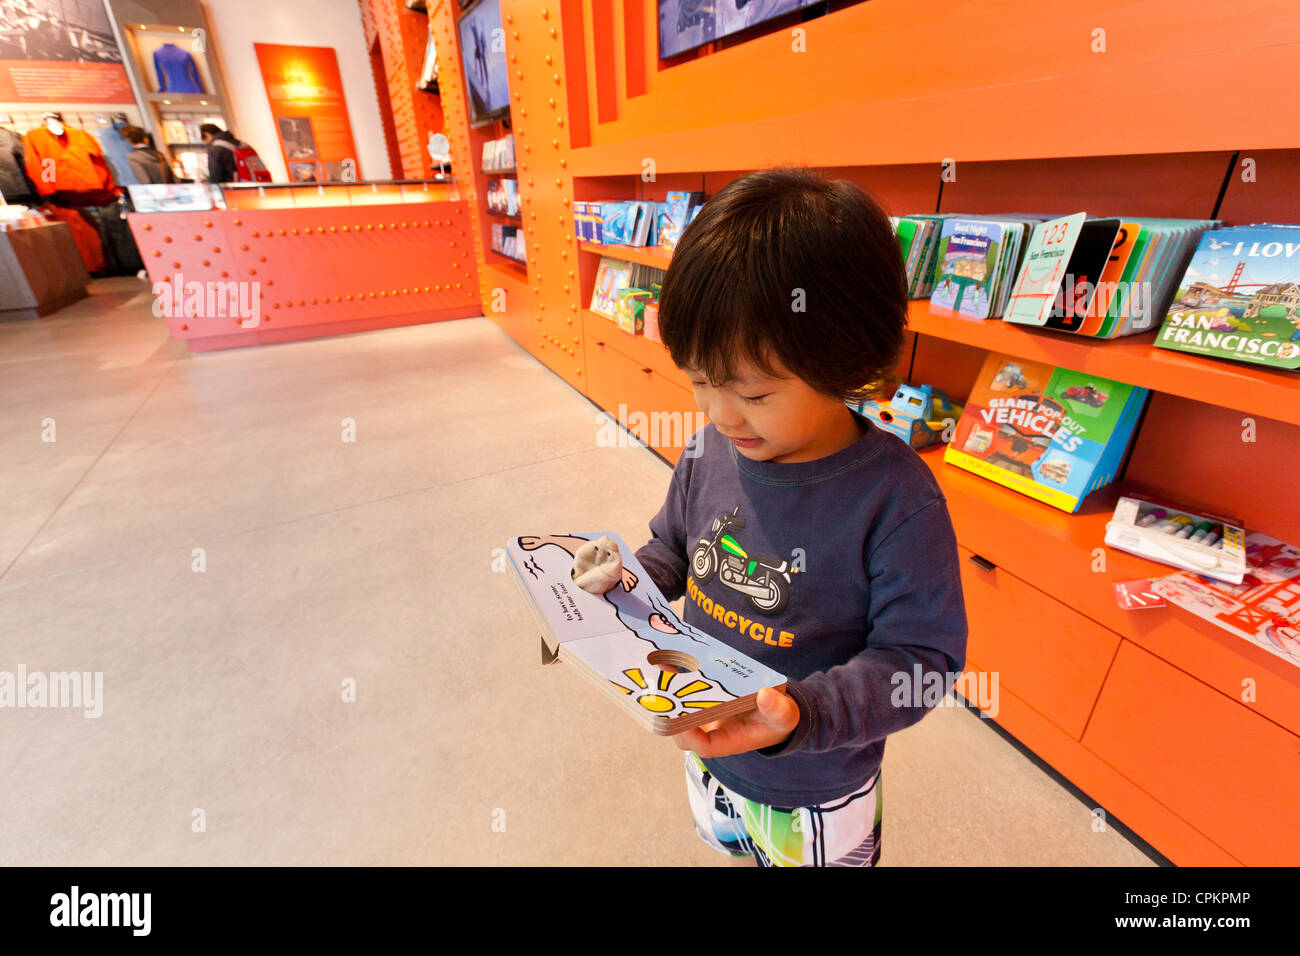 A small Asian boy reading a children's book in the bookstore - Stock Image